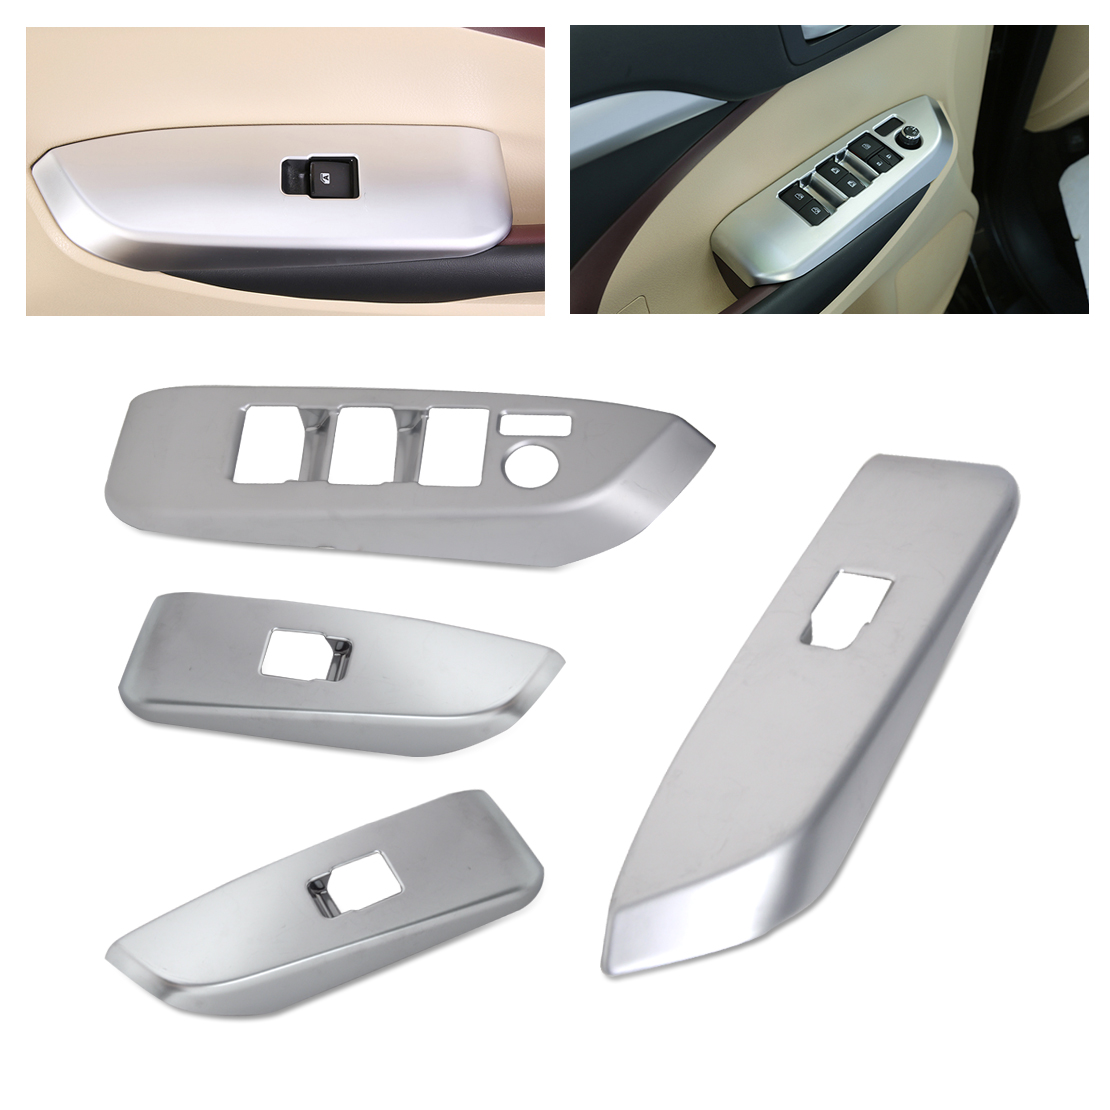 CITALL 4pcs Car Interior ABS Chrome Door Window Switch Console Panel Cover Trim fit for Toyota Highlander 2014 2015 2016 2017 2016 mini clubman one coopers side door power window switch center console panel covers accessories car stickers for f54 6 door page 6